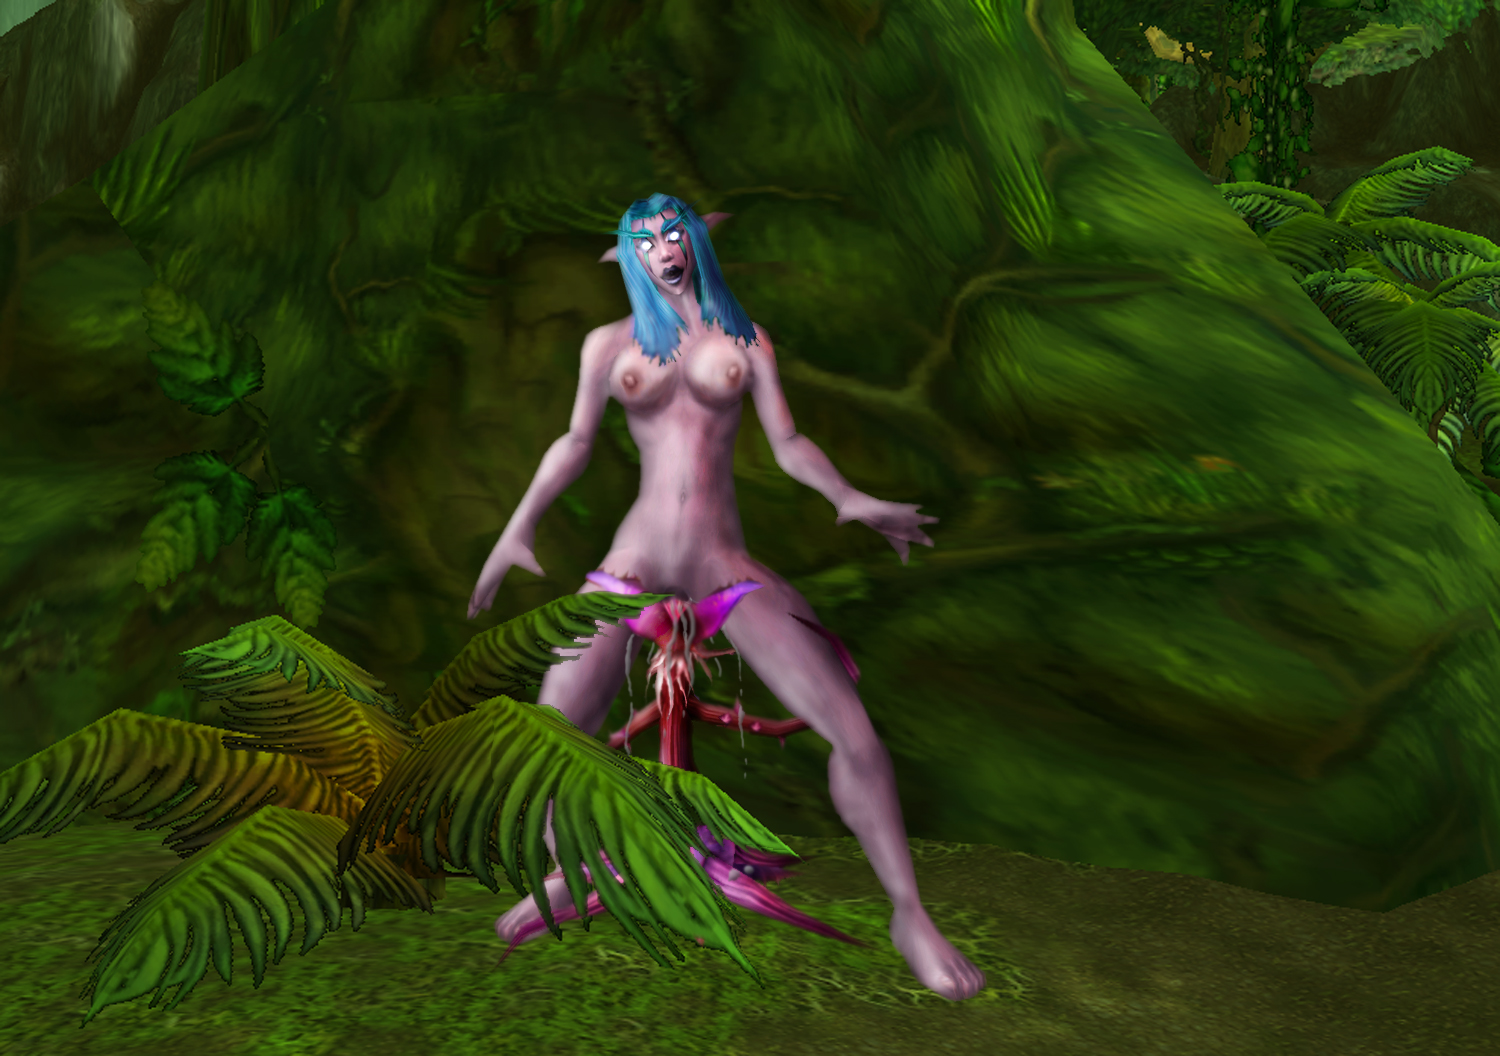 Horde warrior nudes erotic comic